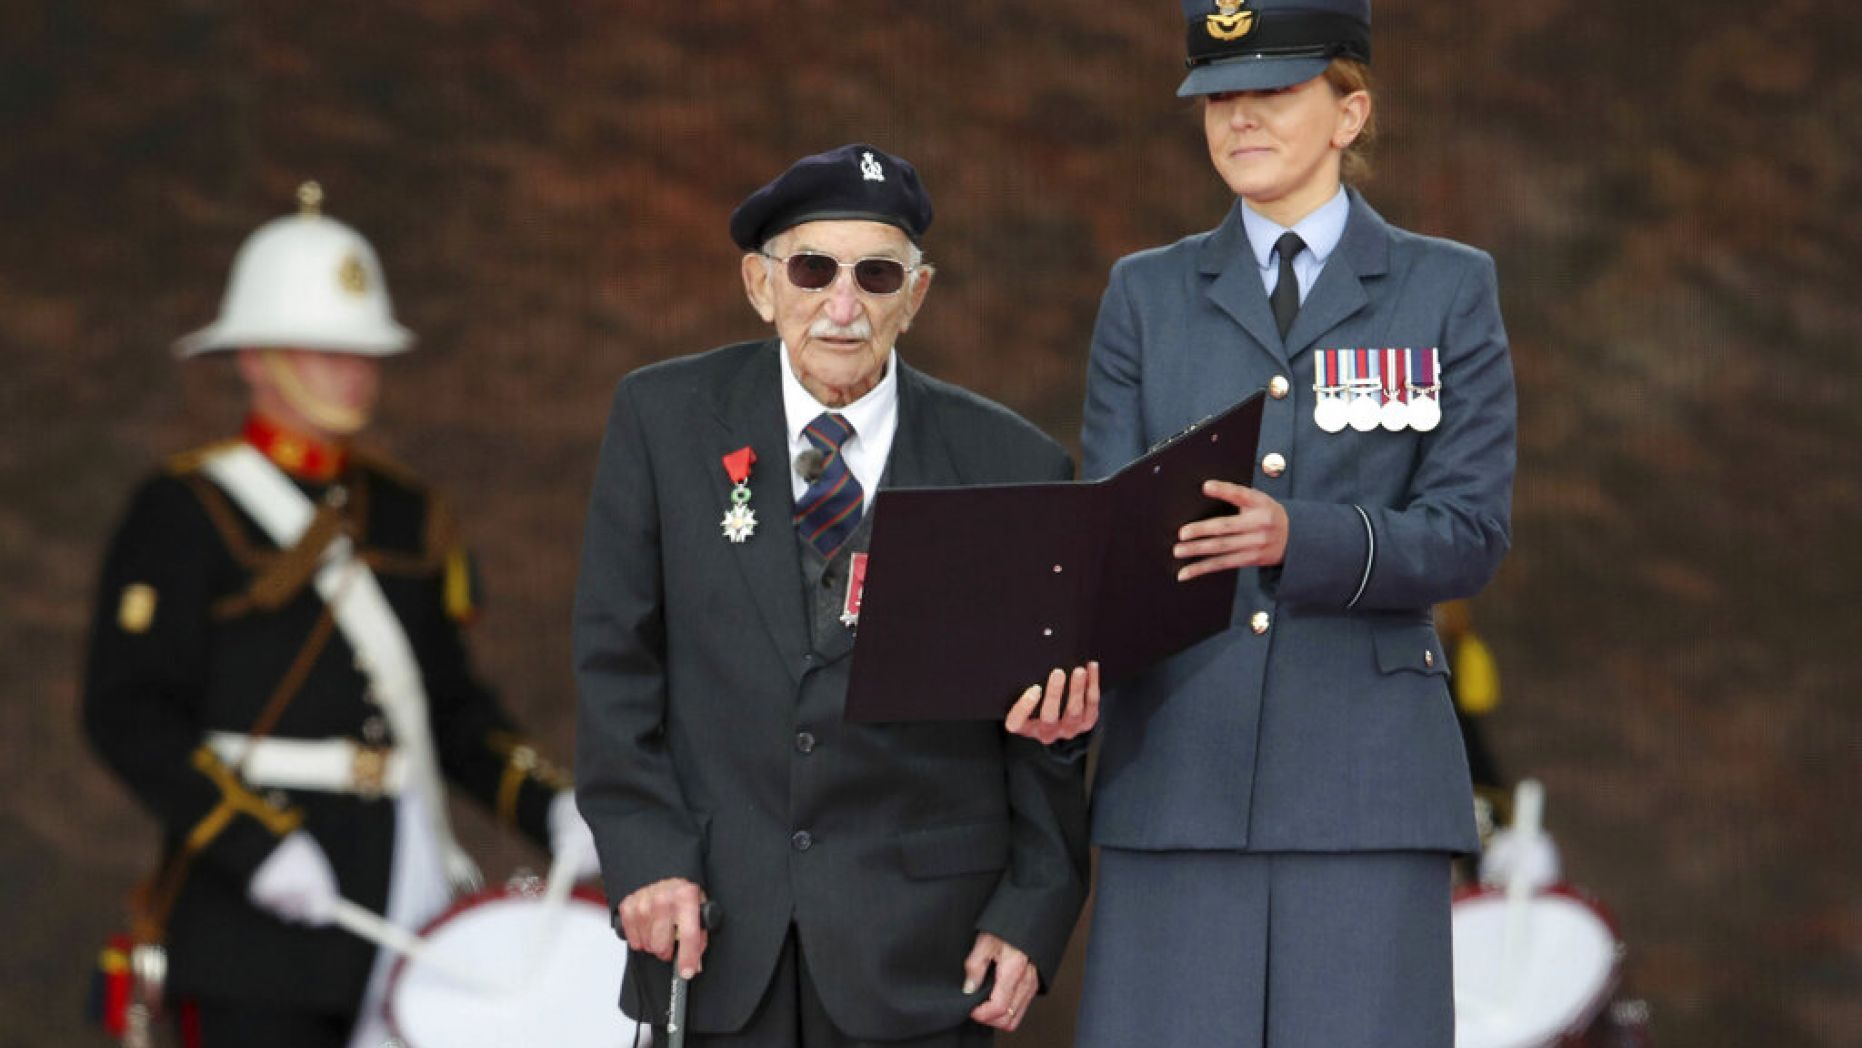 D-Day veteran John Jenkins on stage during commemorations for the 75th Anniversary of the D-Day landings, in Portsmouth, England, Wednesday June 5, 2019. (PA via AP)